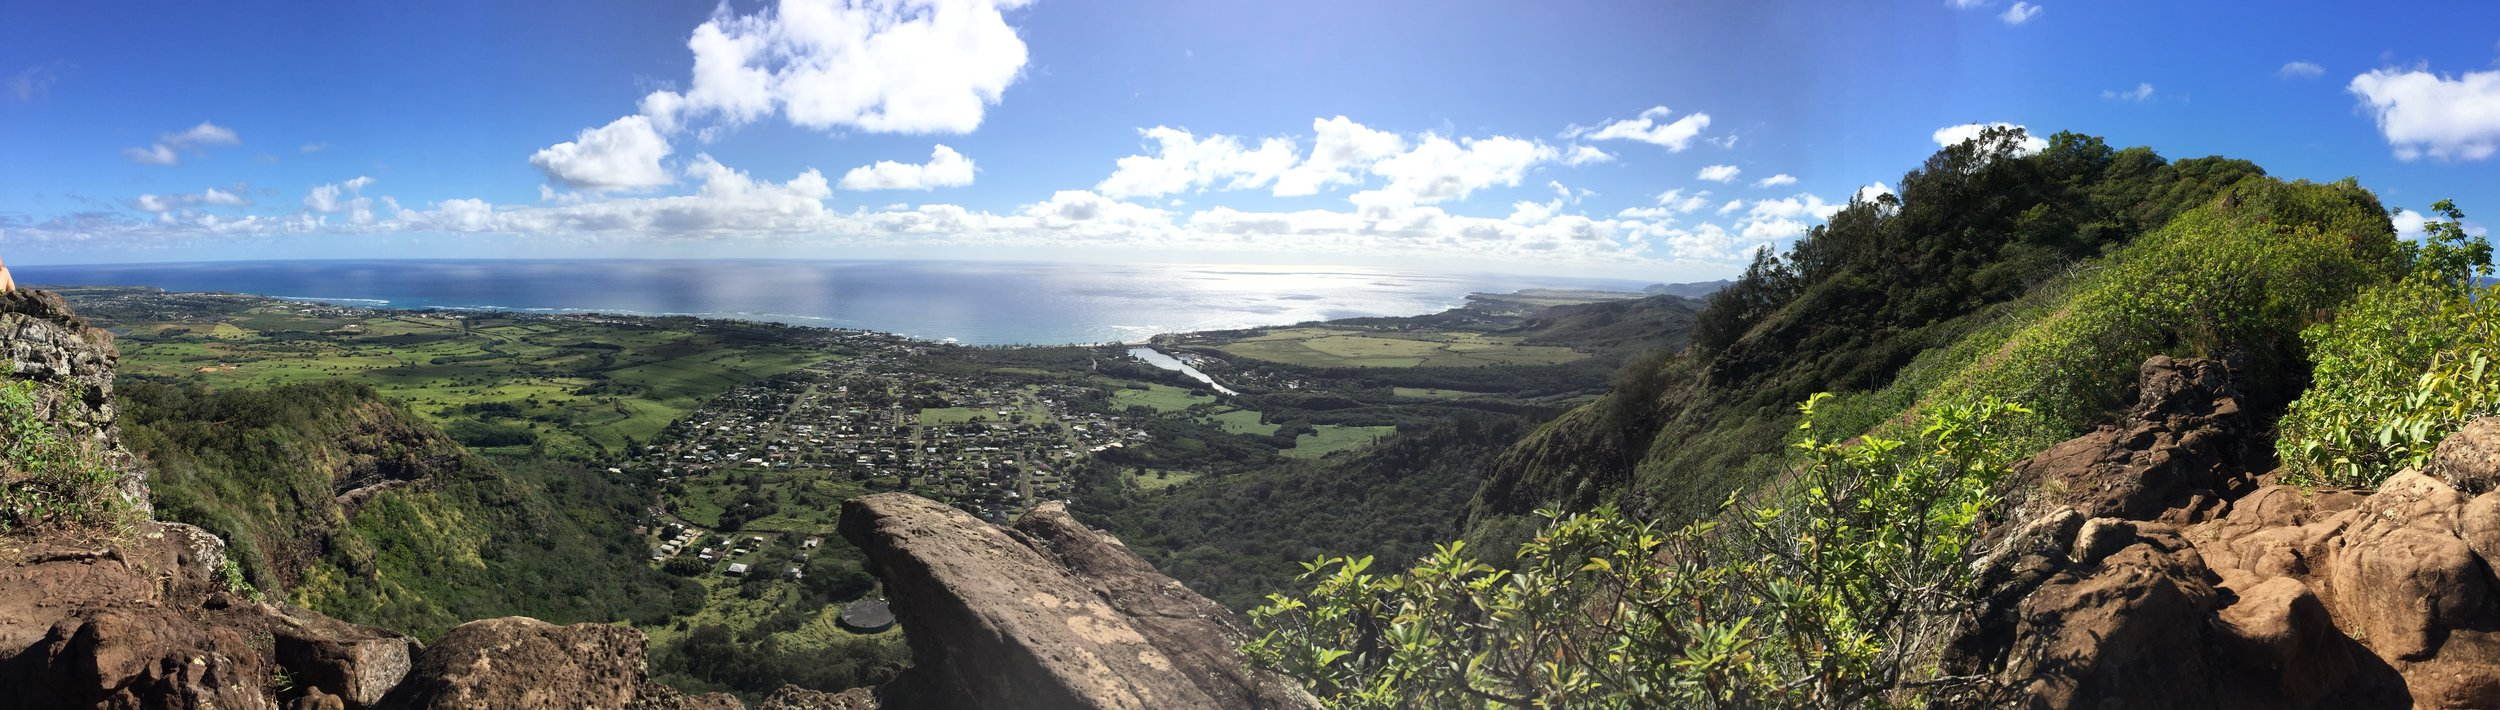 Views from The Sleeping Giant - Kauai, Hawaii - via Jitneys